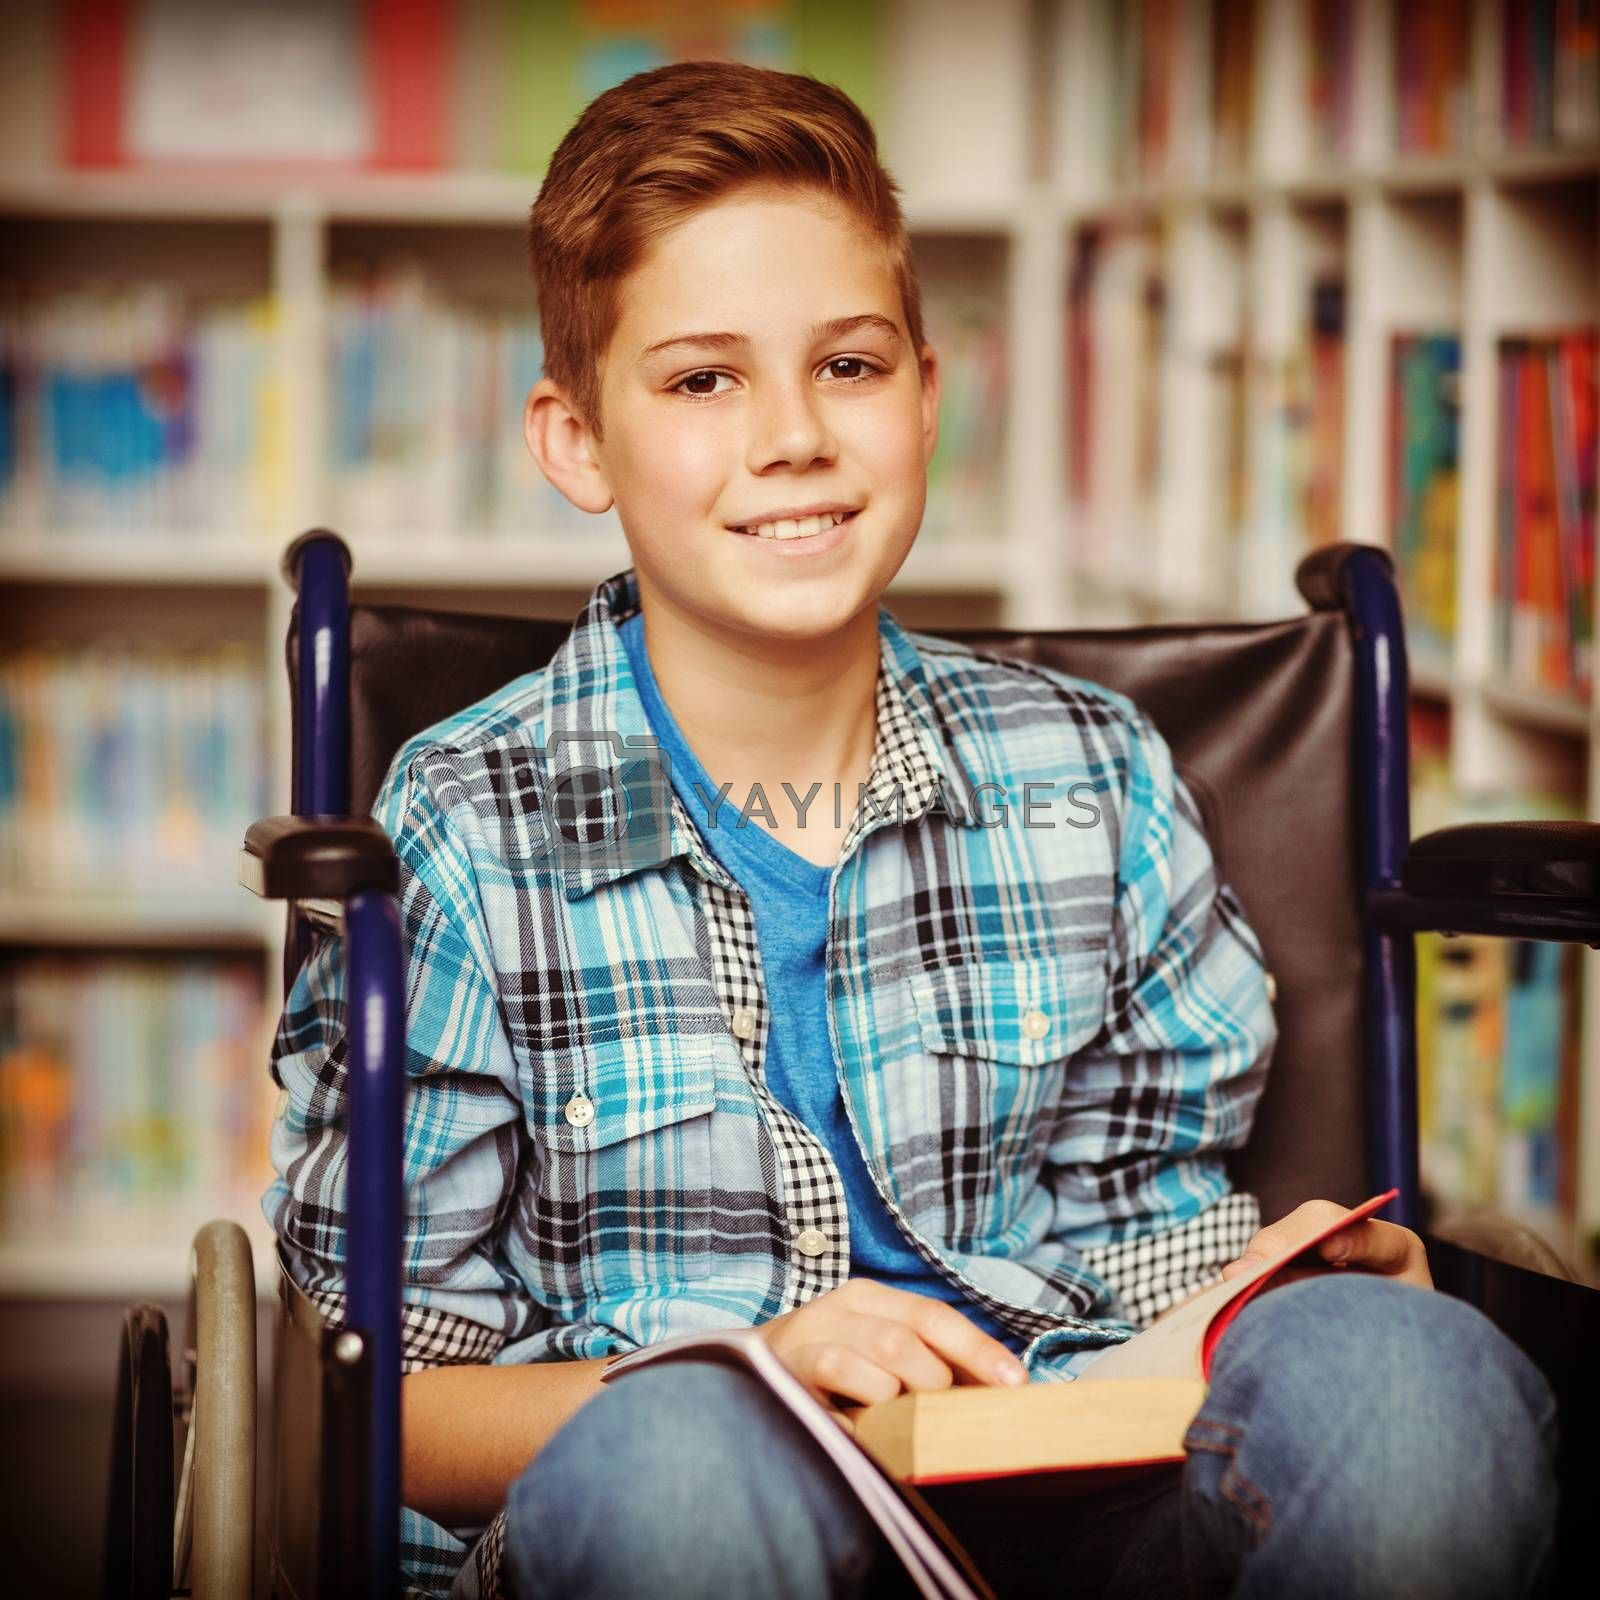 Portrait of disabled schoolboy holding book in library by Wavebreakmedia